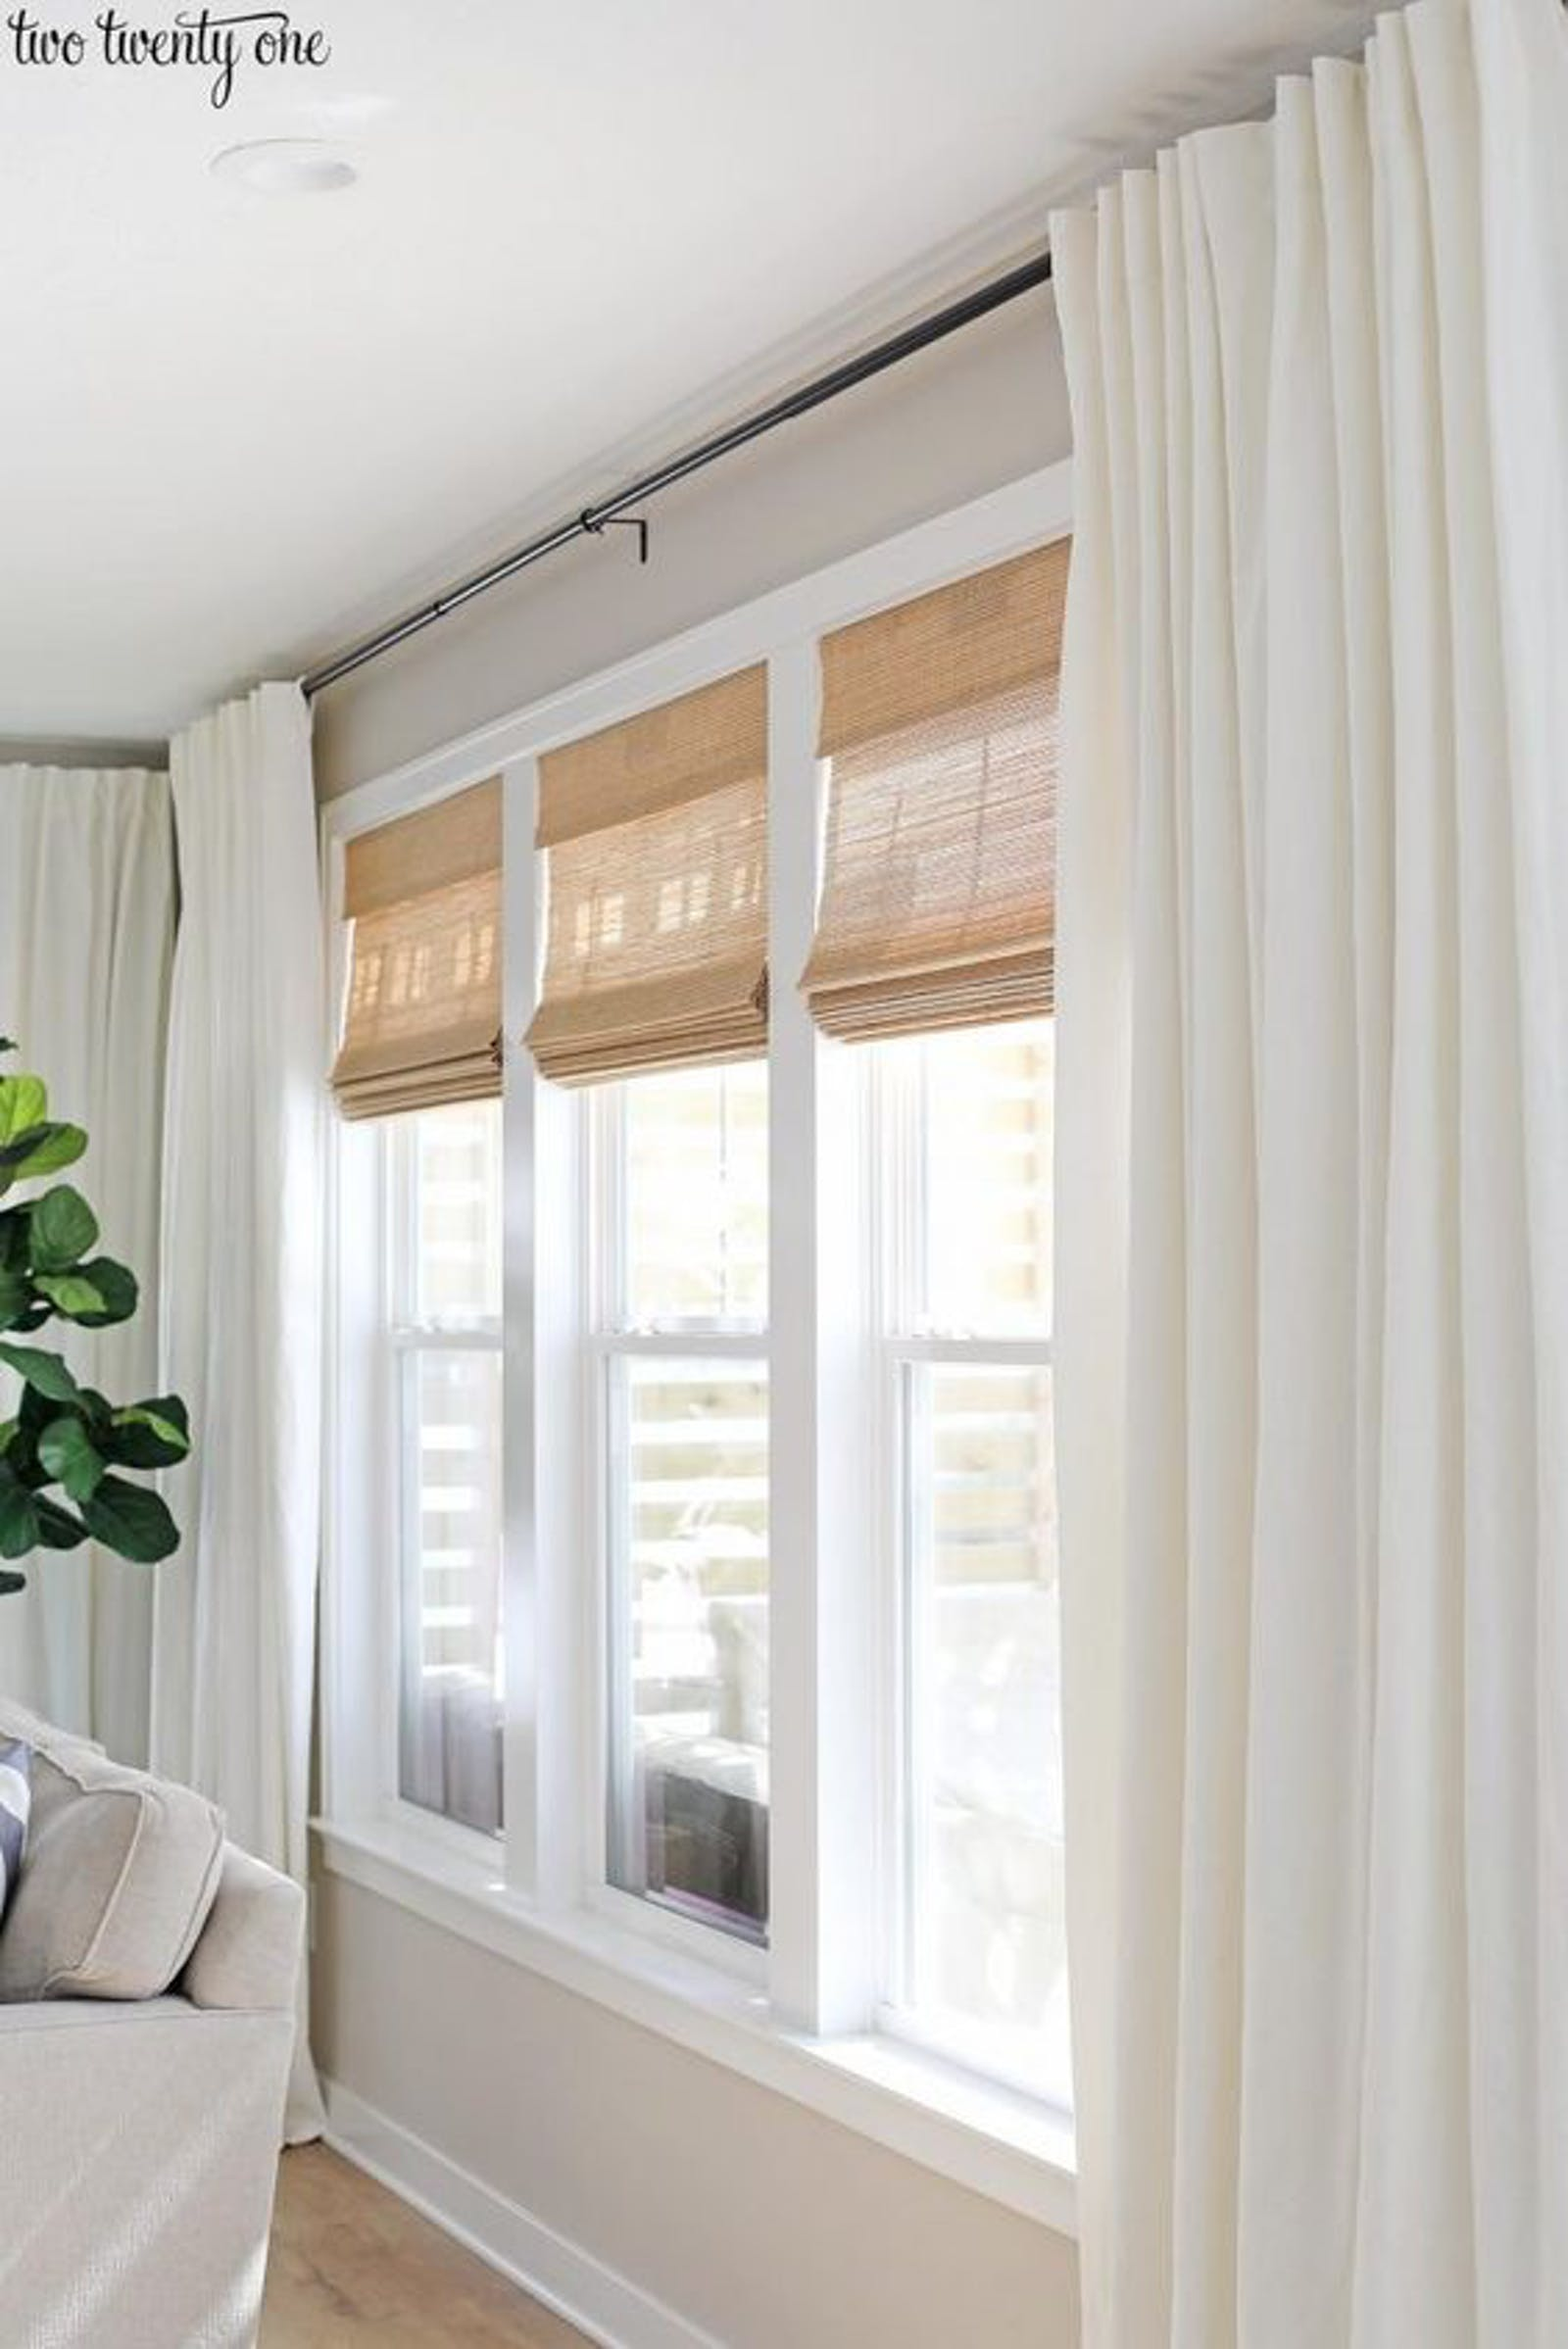 Three windows with rattan roman blinds and white floor length curtains